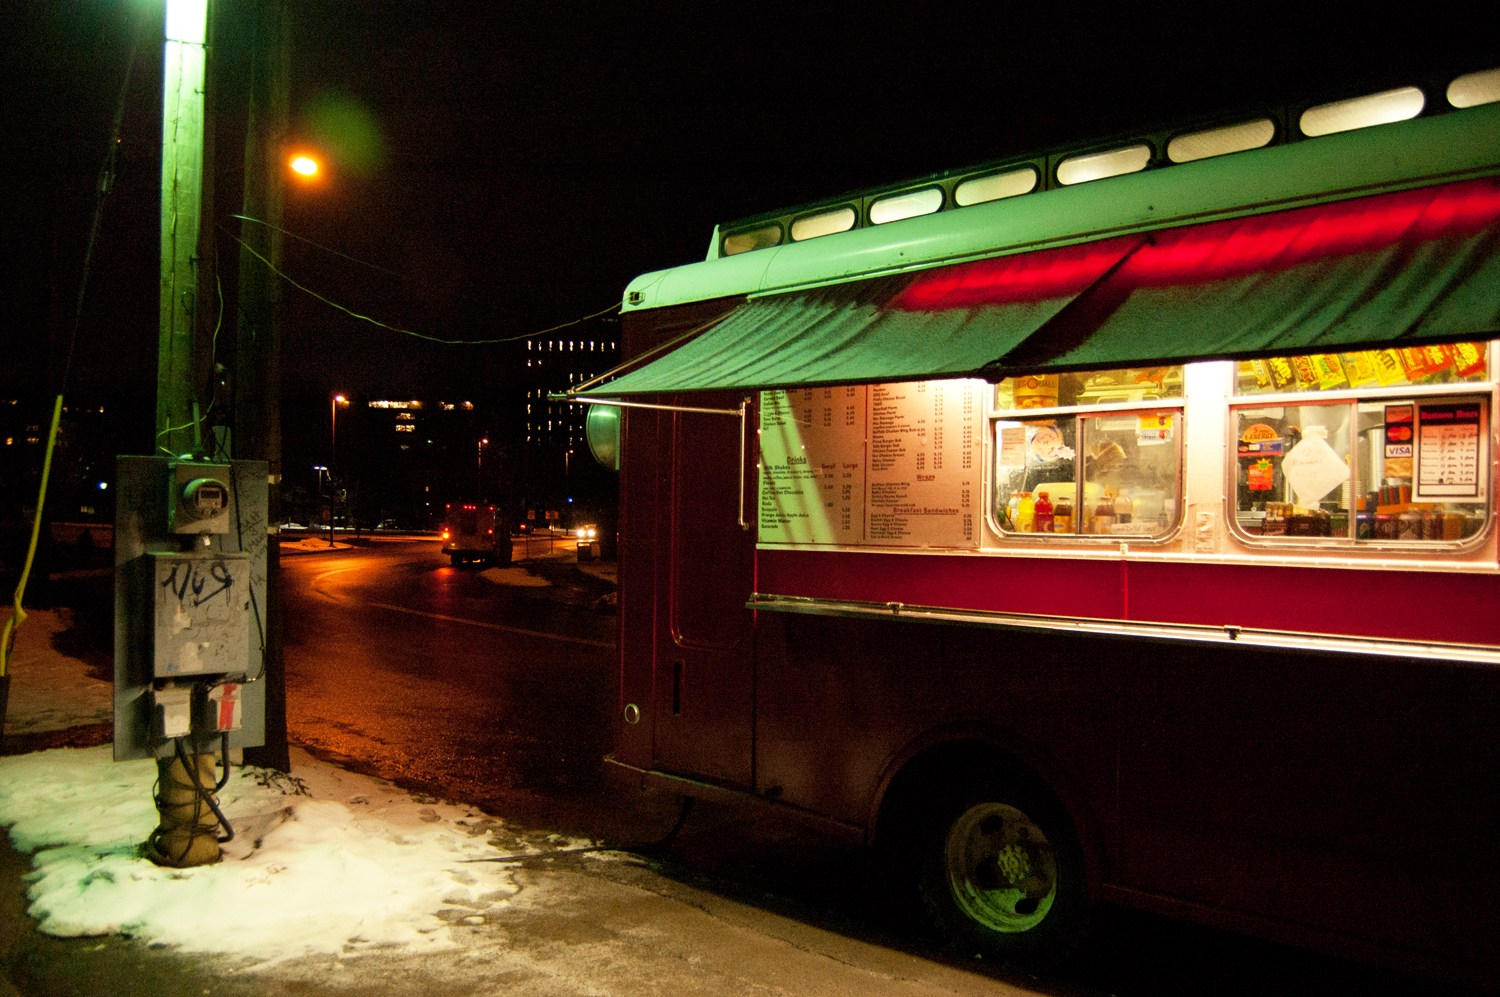 Ithaca, NY: Food Trucks and Restaurants Battle Over Hours, Terrain